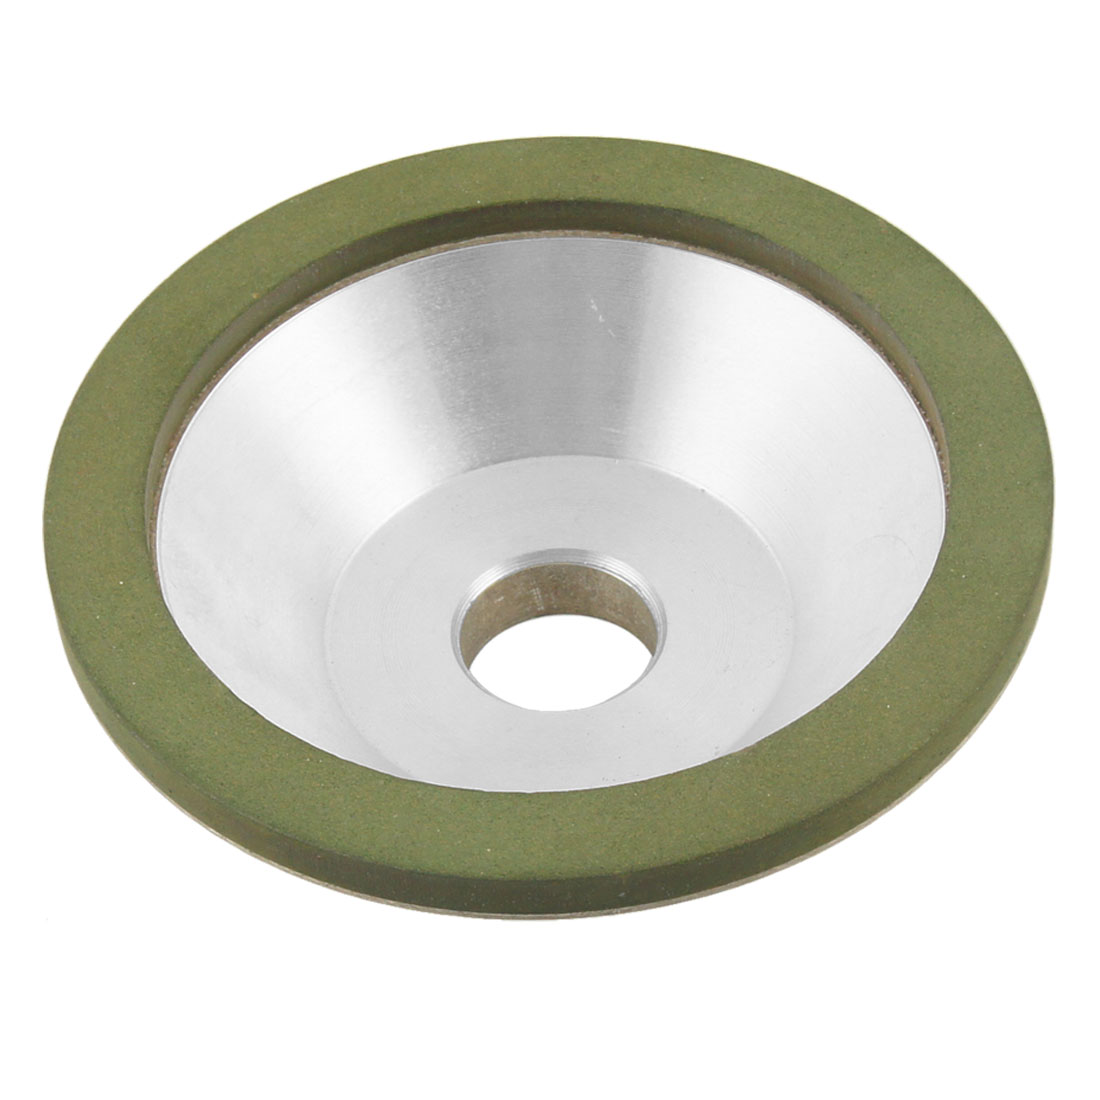 75% 240 Grit Resin Bond Bowl Shape Diamond Grinding Wheel Grinder 100mm x 32mm